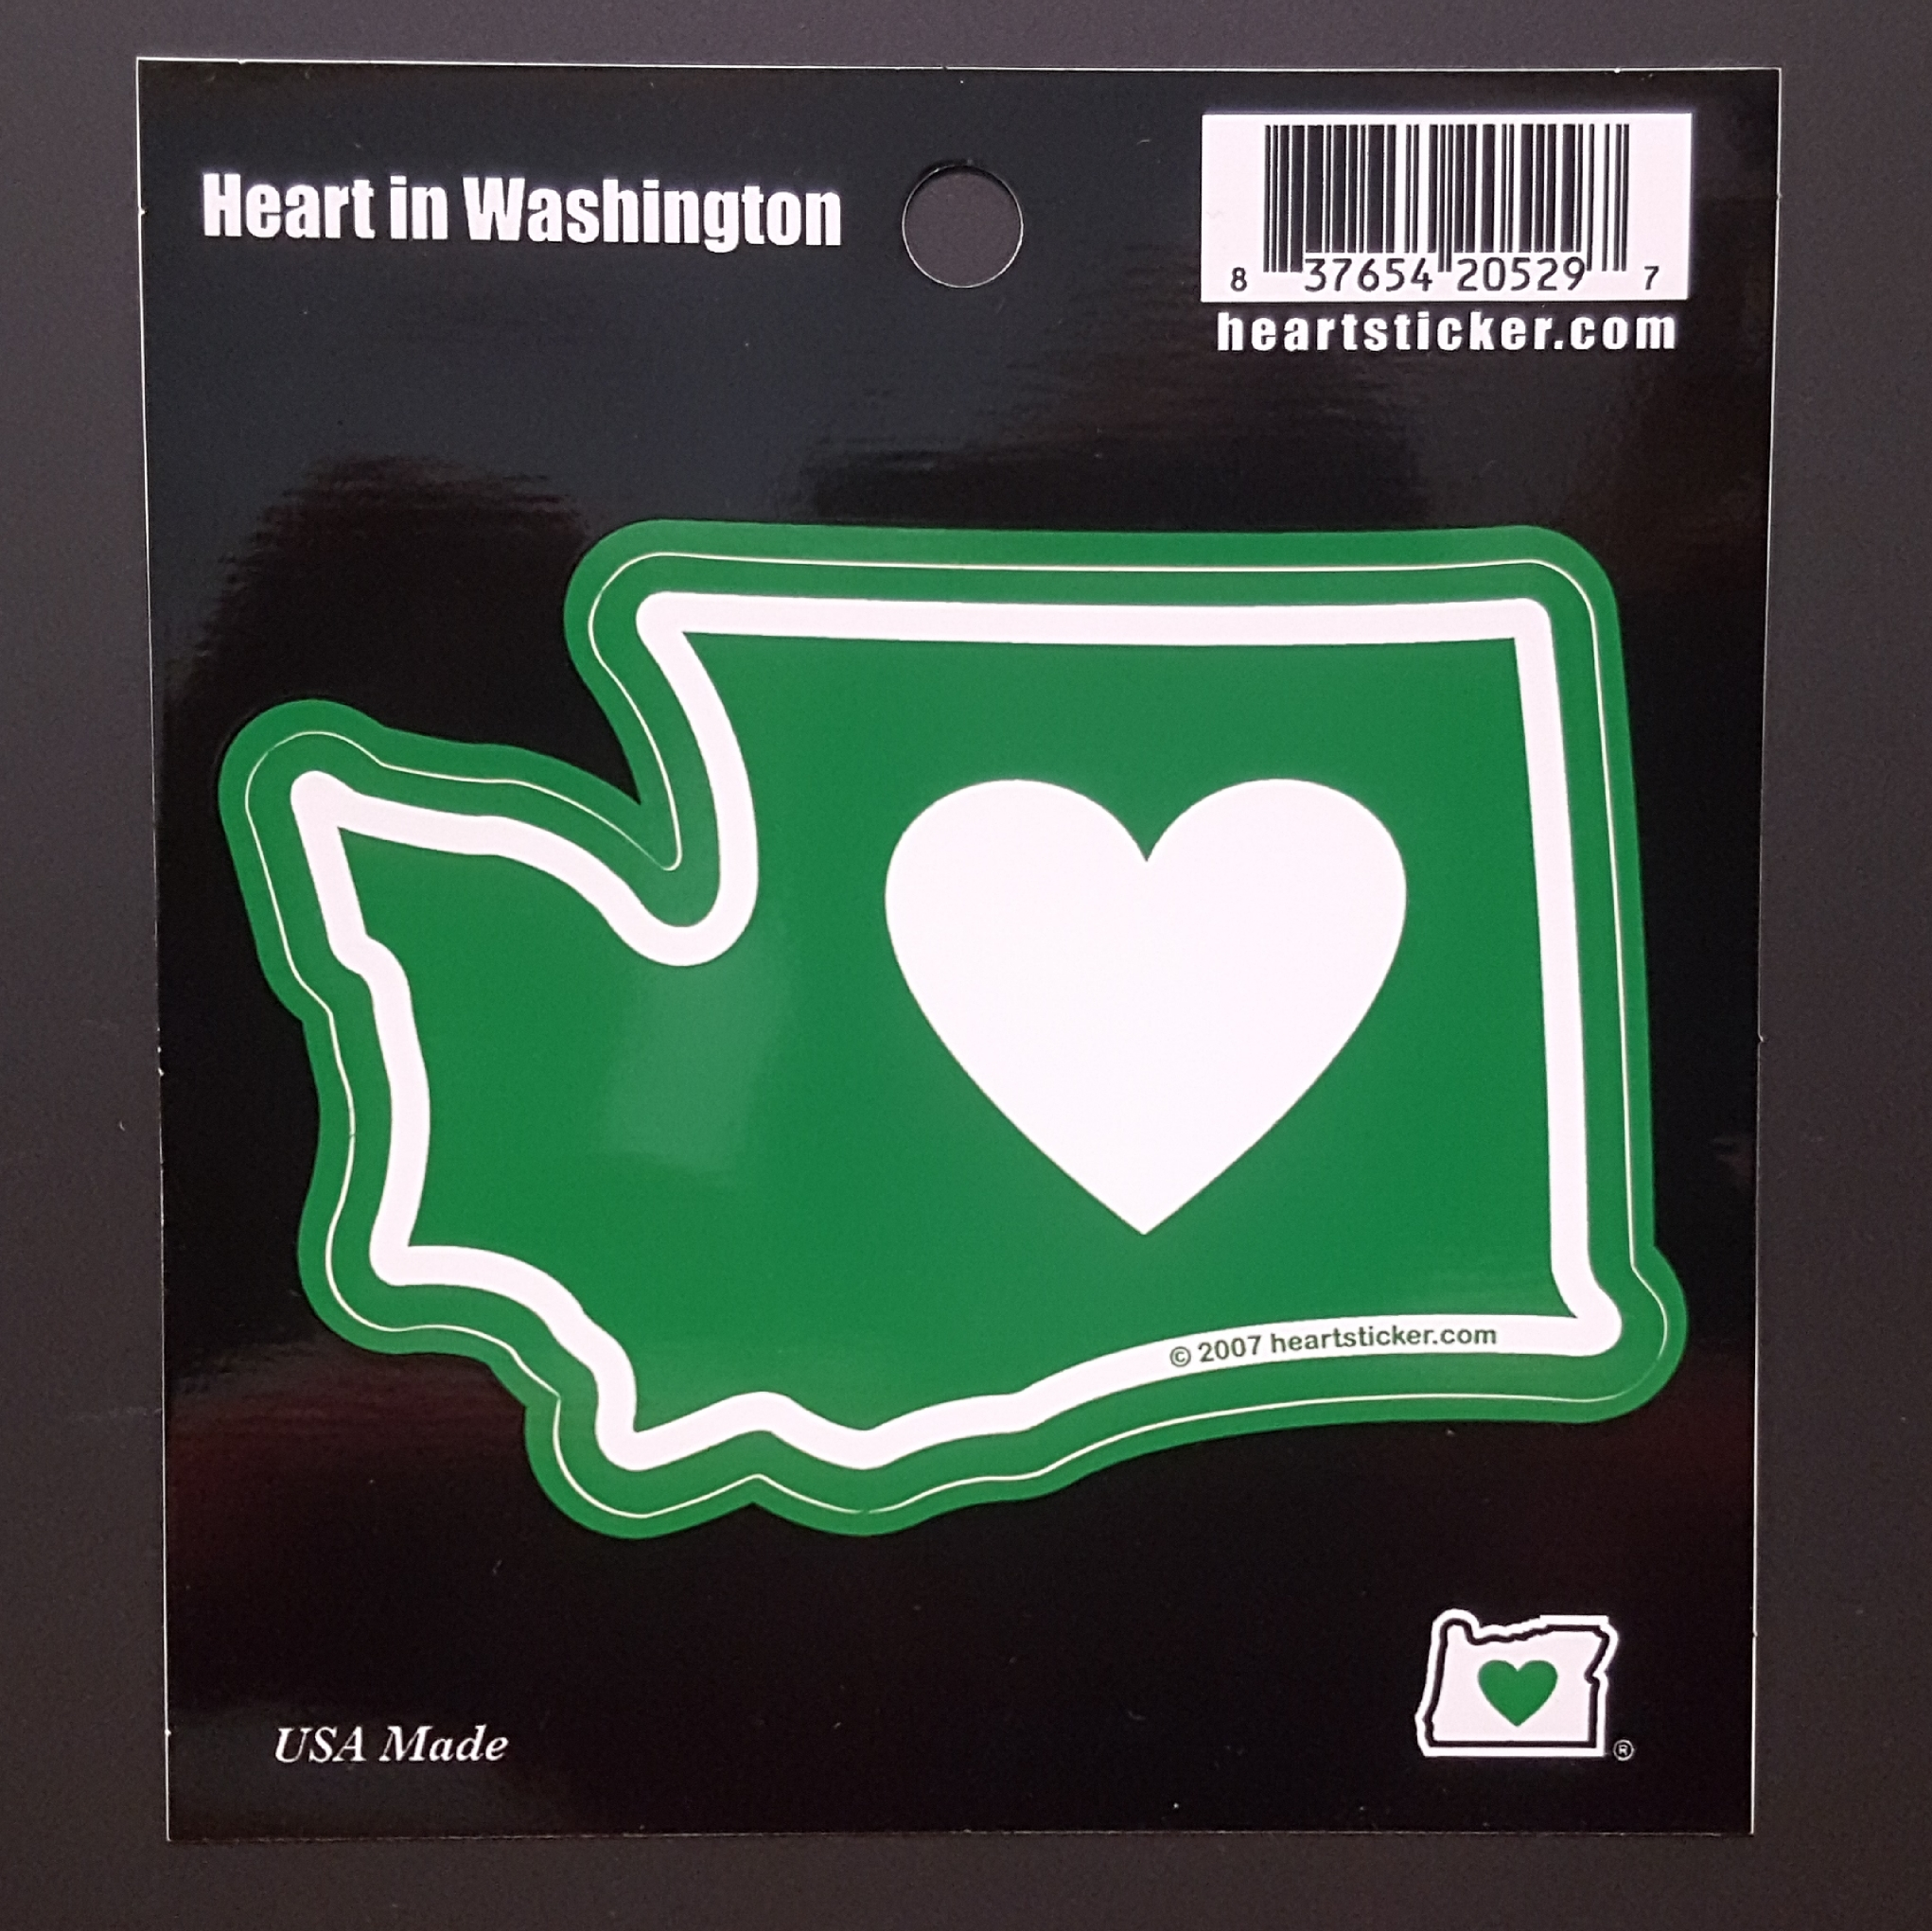 Heart in Washington